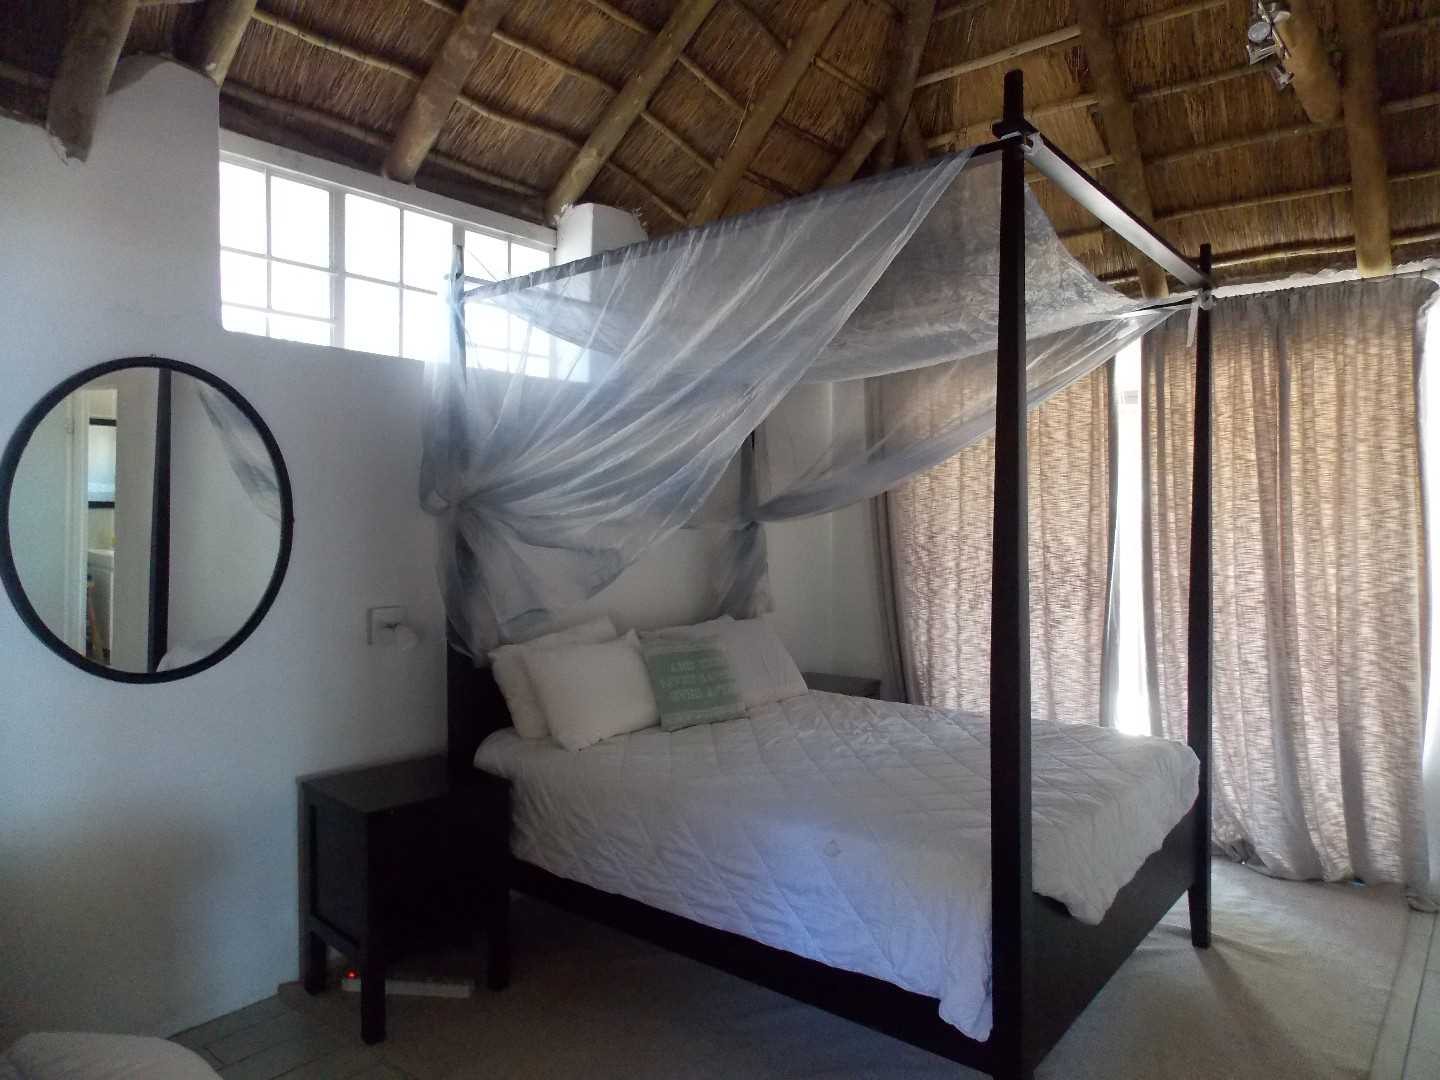 Bedroom in the cottage